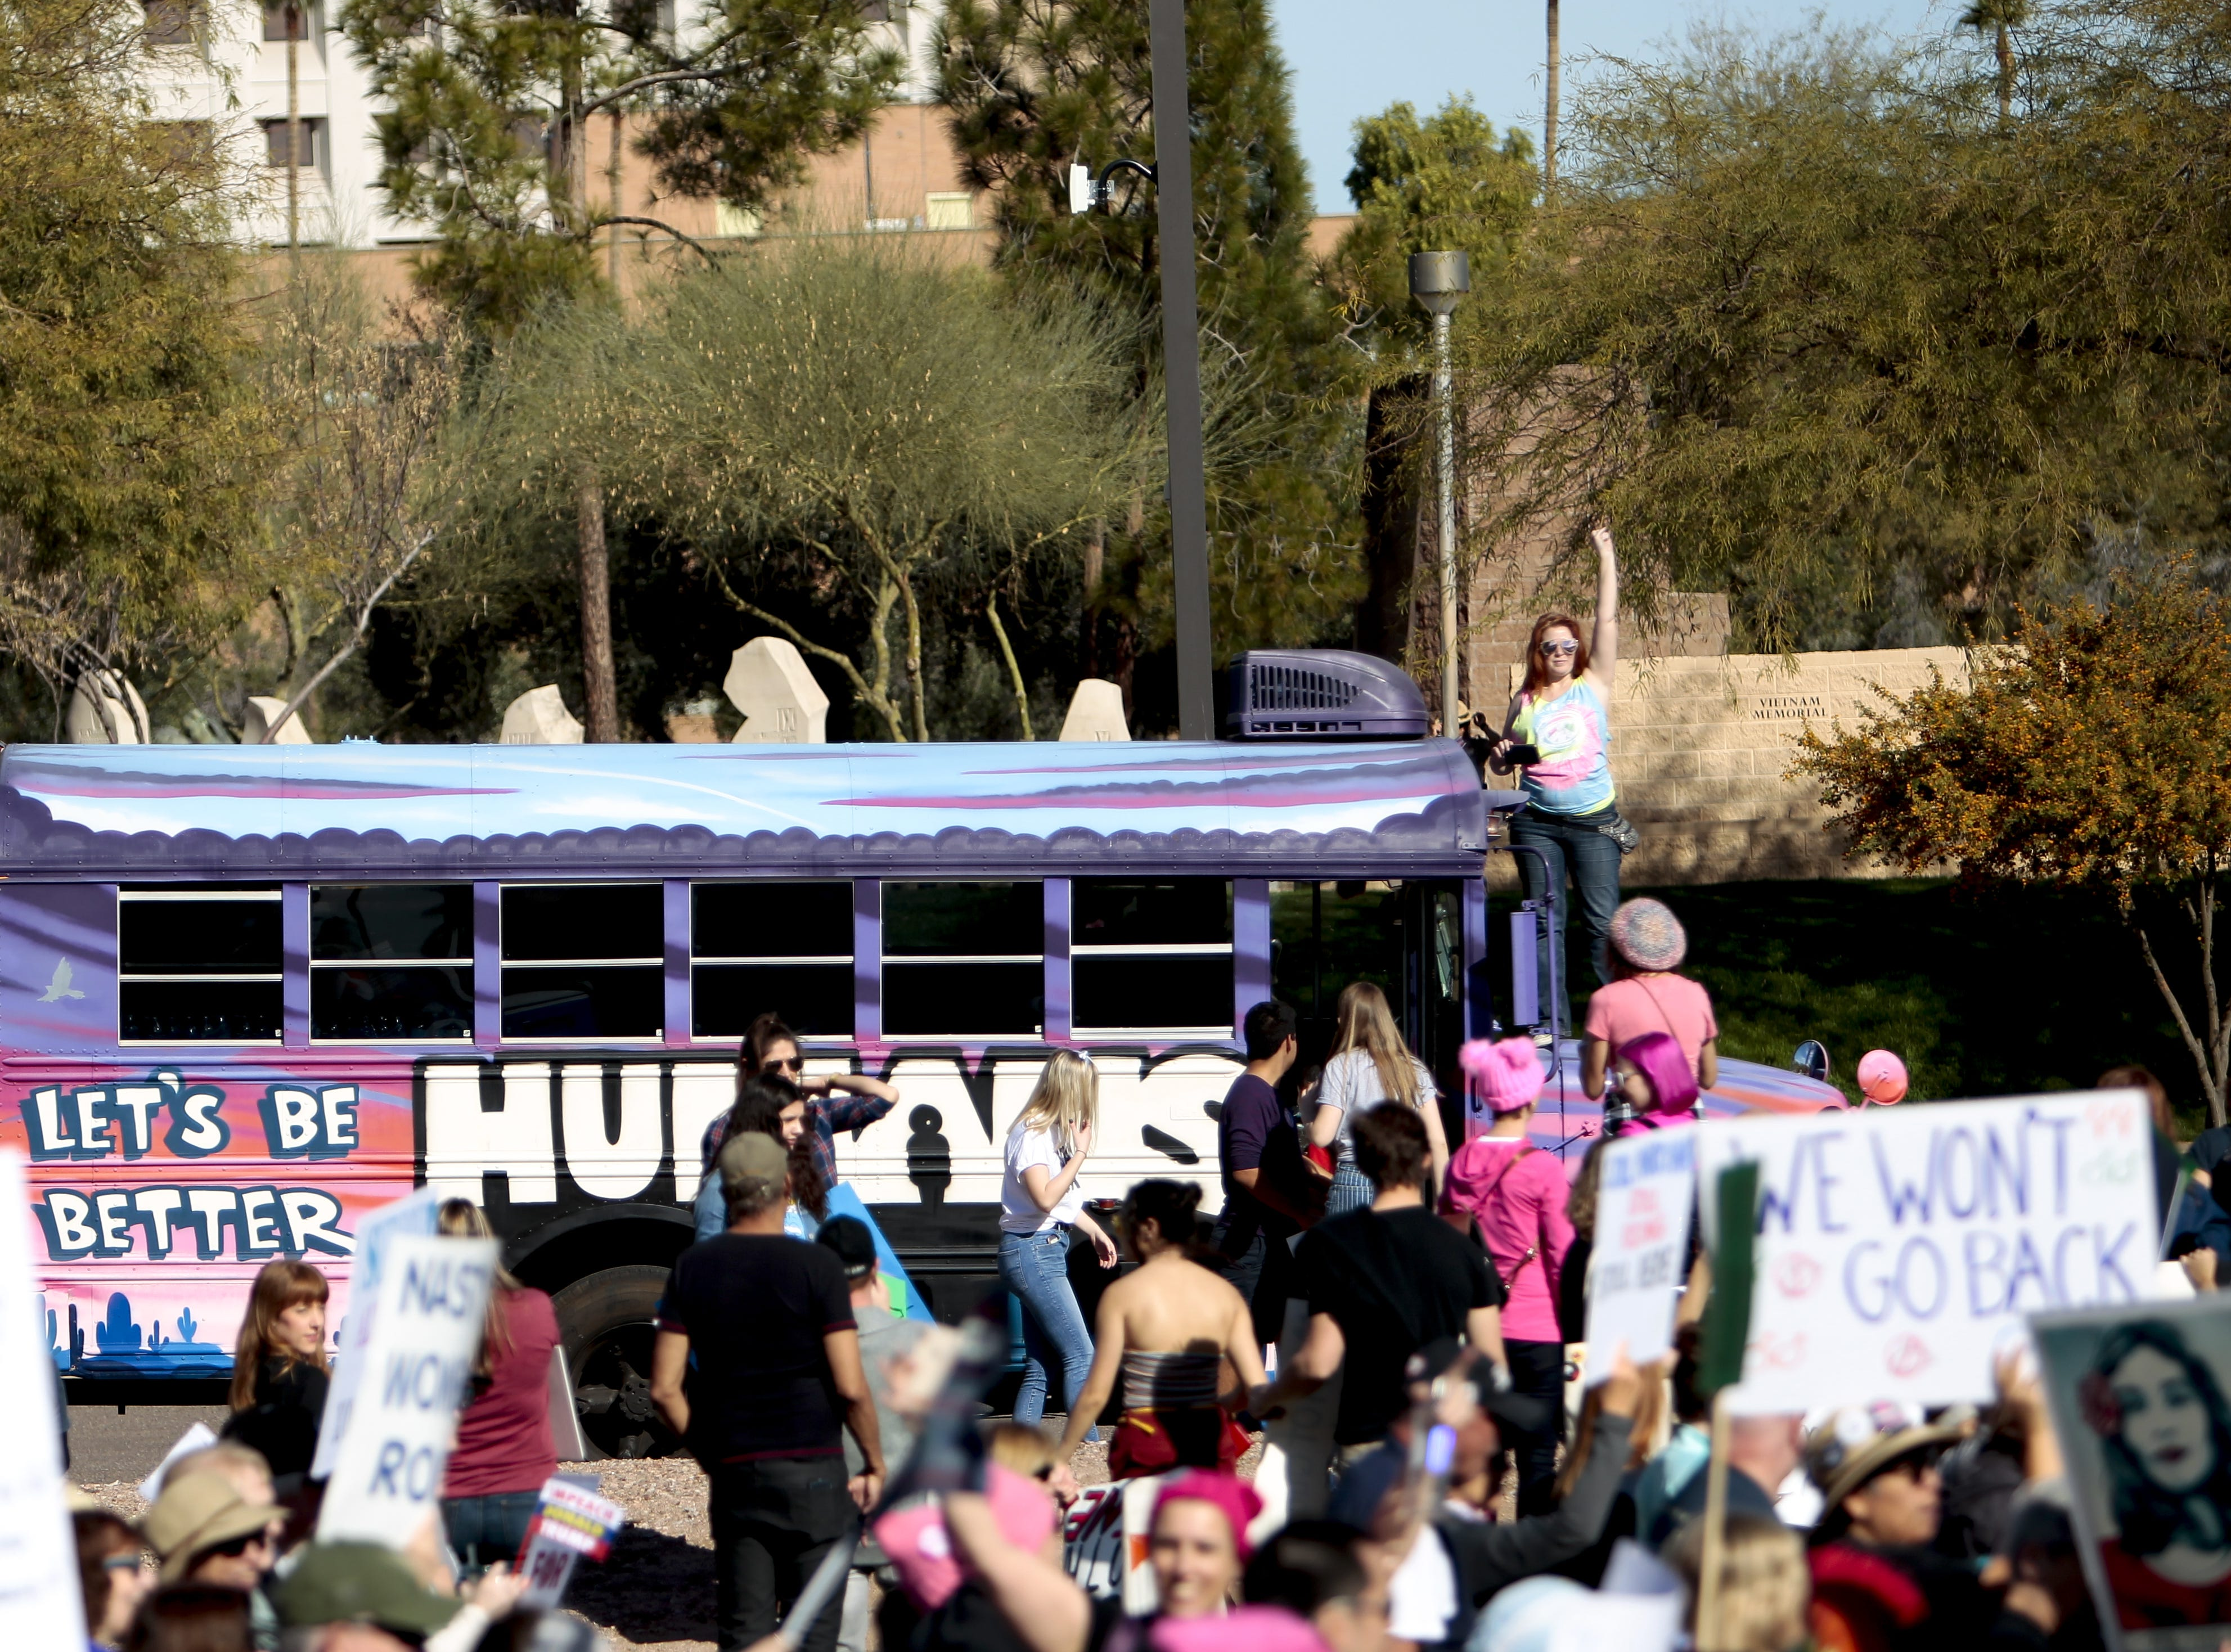 BC Brown waves people over to the Let's Be Better Humans van at the Phoenix Women's March on Jan. 19, 2019, at the Arizona Capitol.